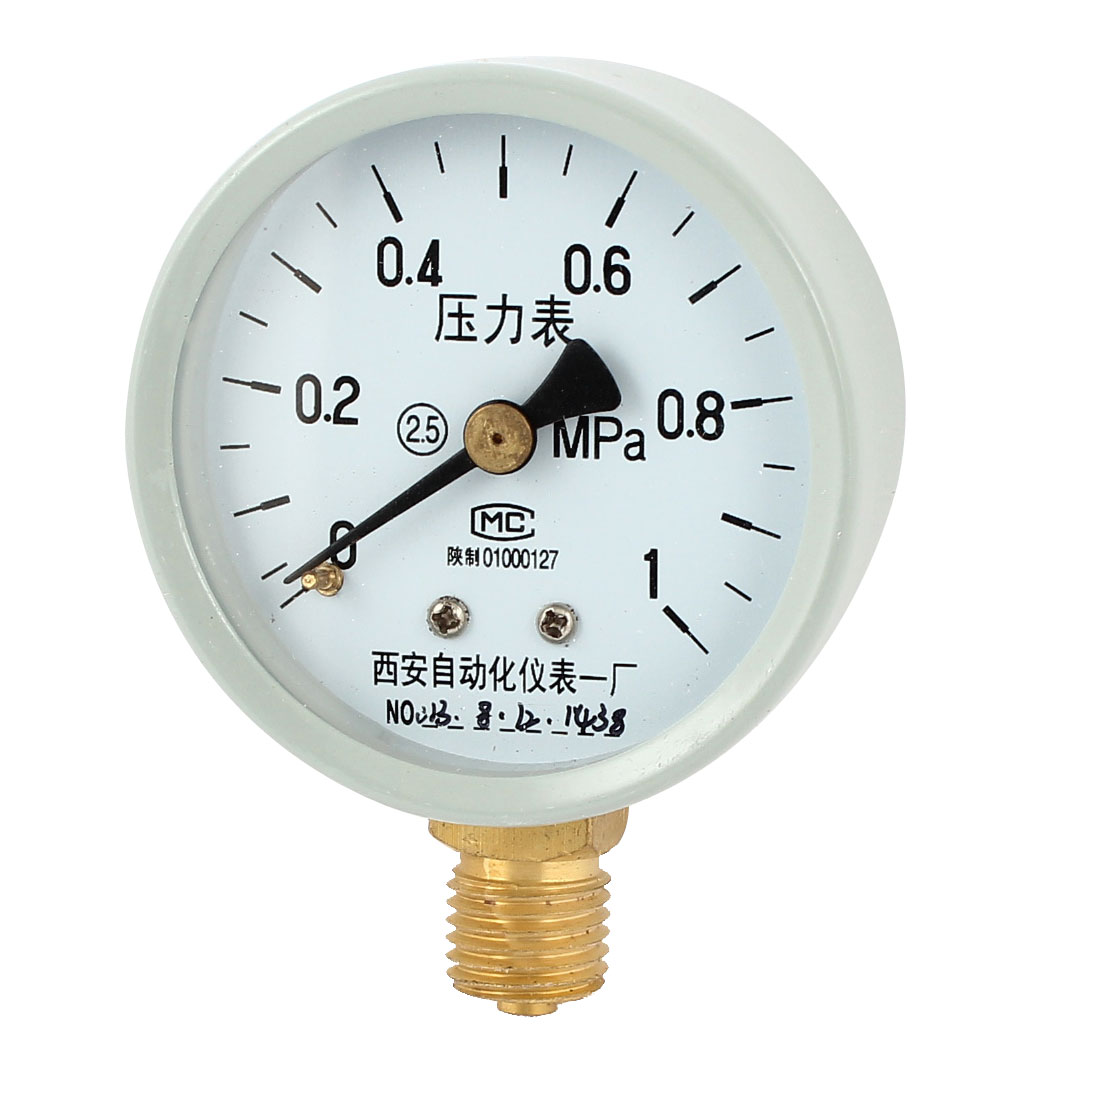 1/4PT Male Threaded 0-1Mpa Pneumatic Air Pressure Measuring Gauge Light Gray